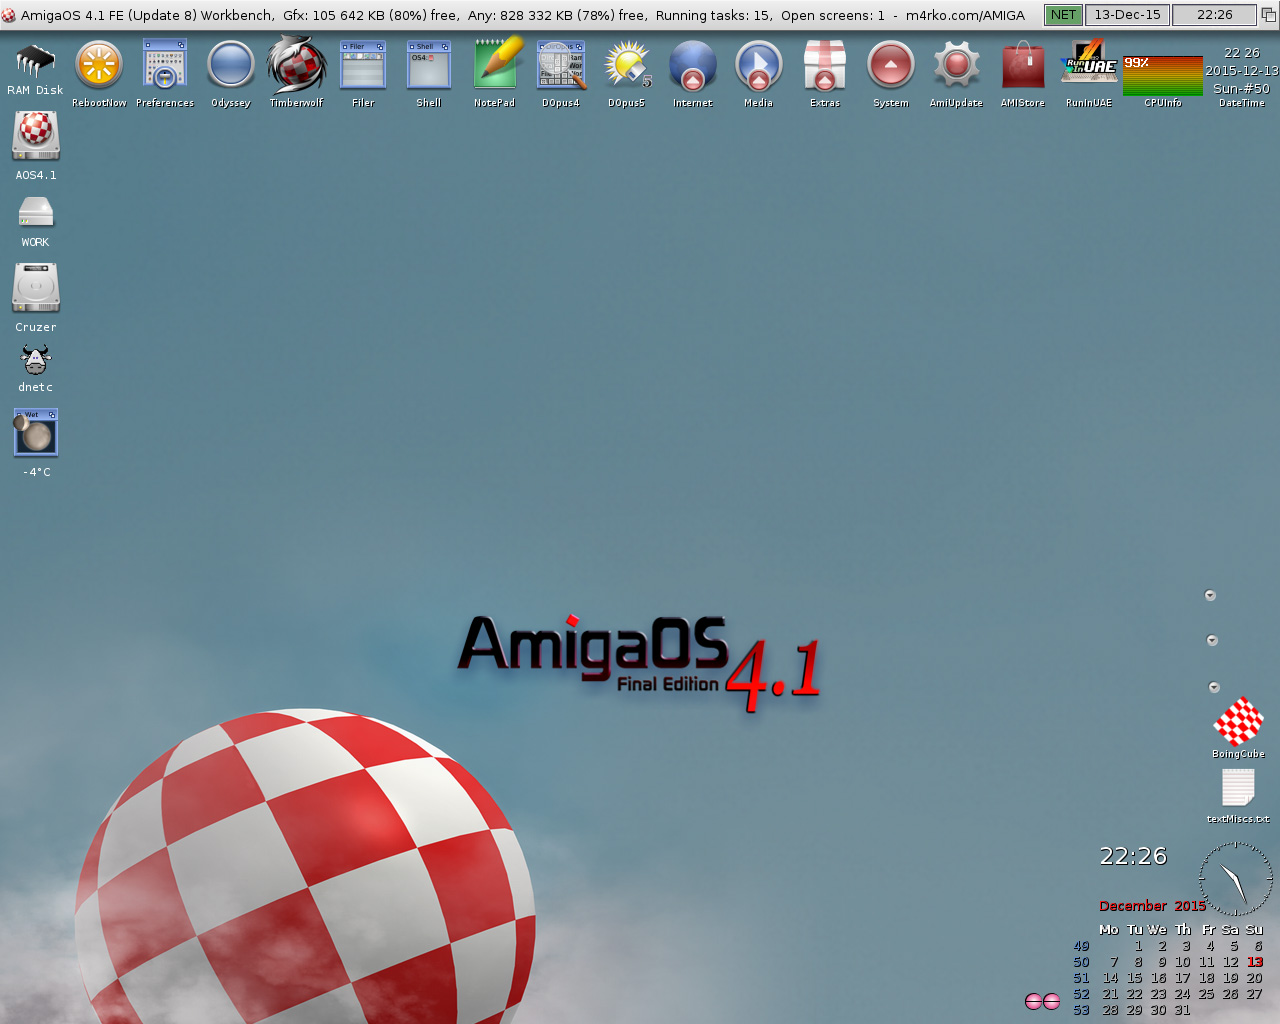 Docky at the top-AmigaOS 4.1 FE-Update 8-Workbench